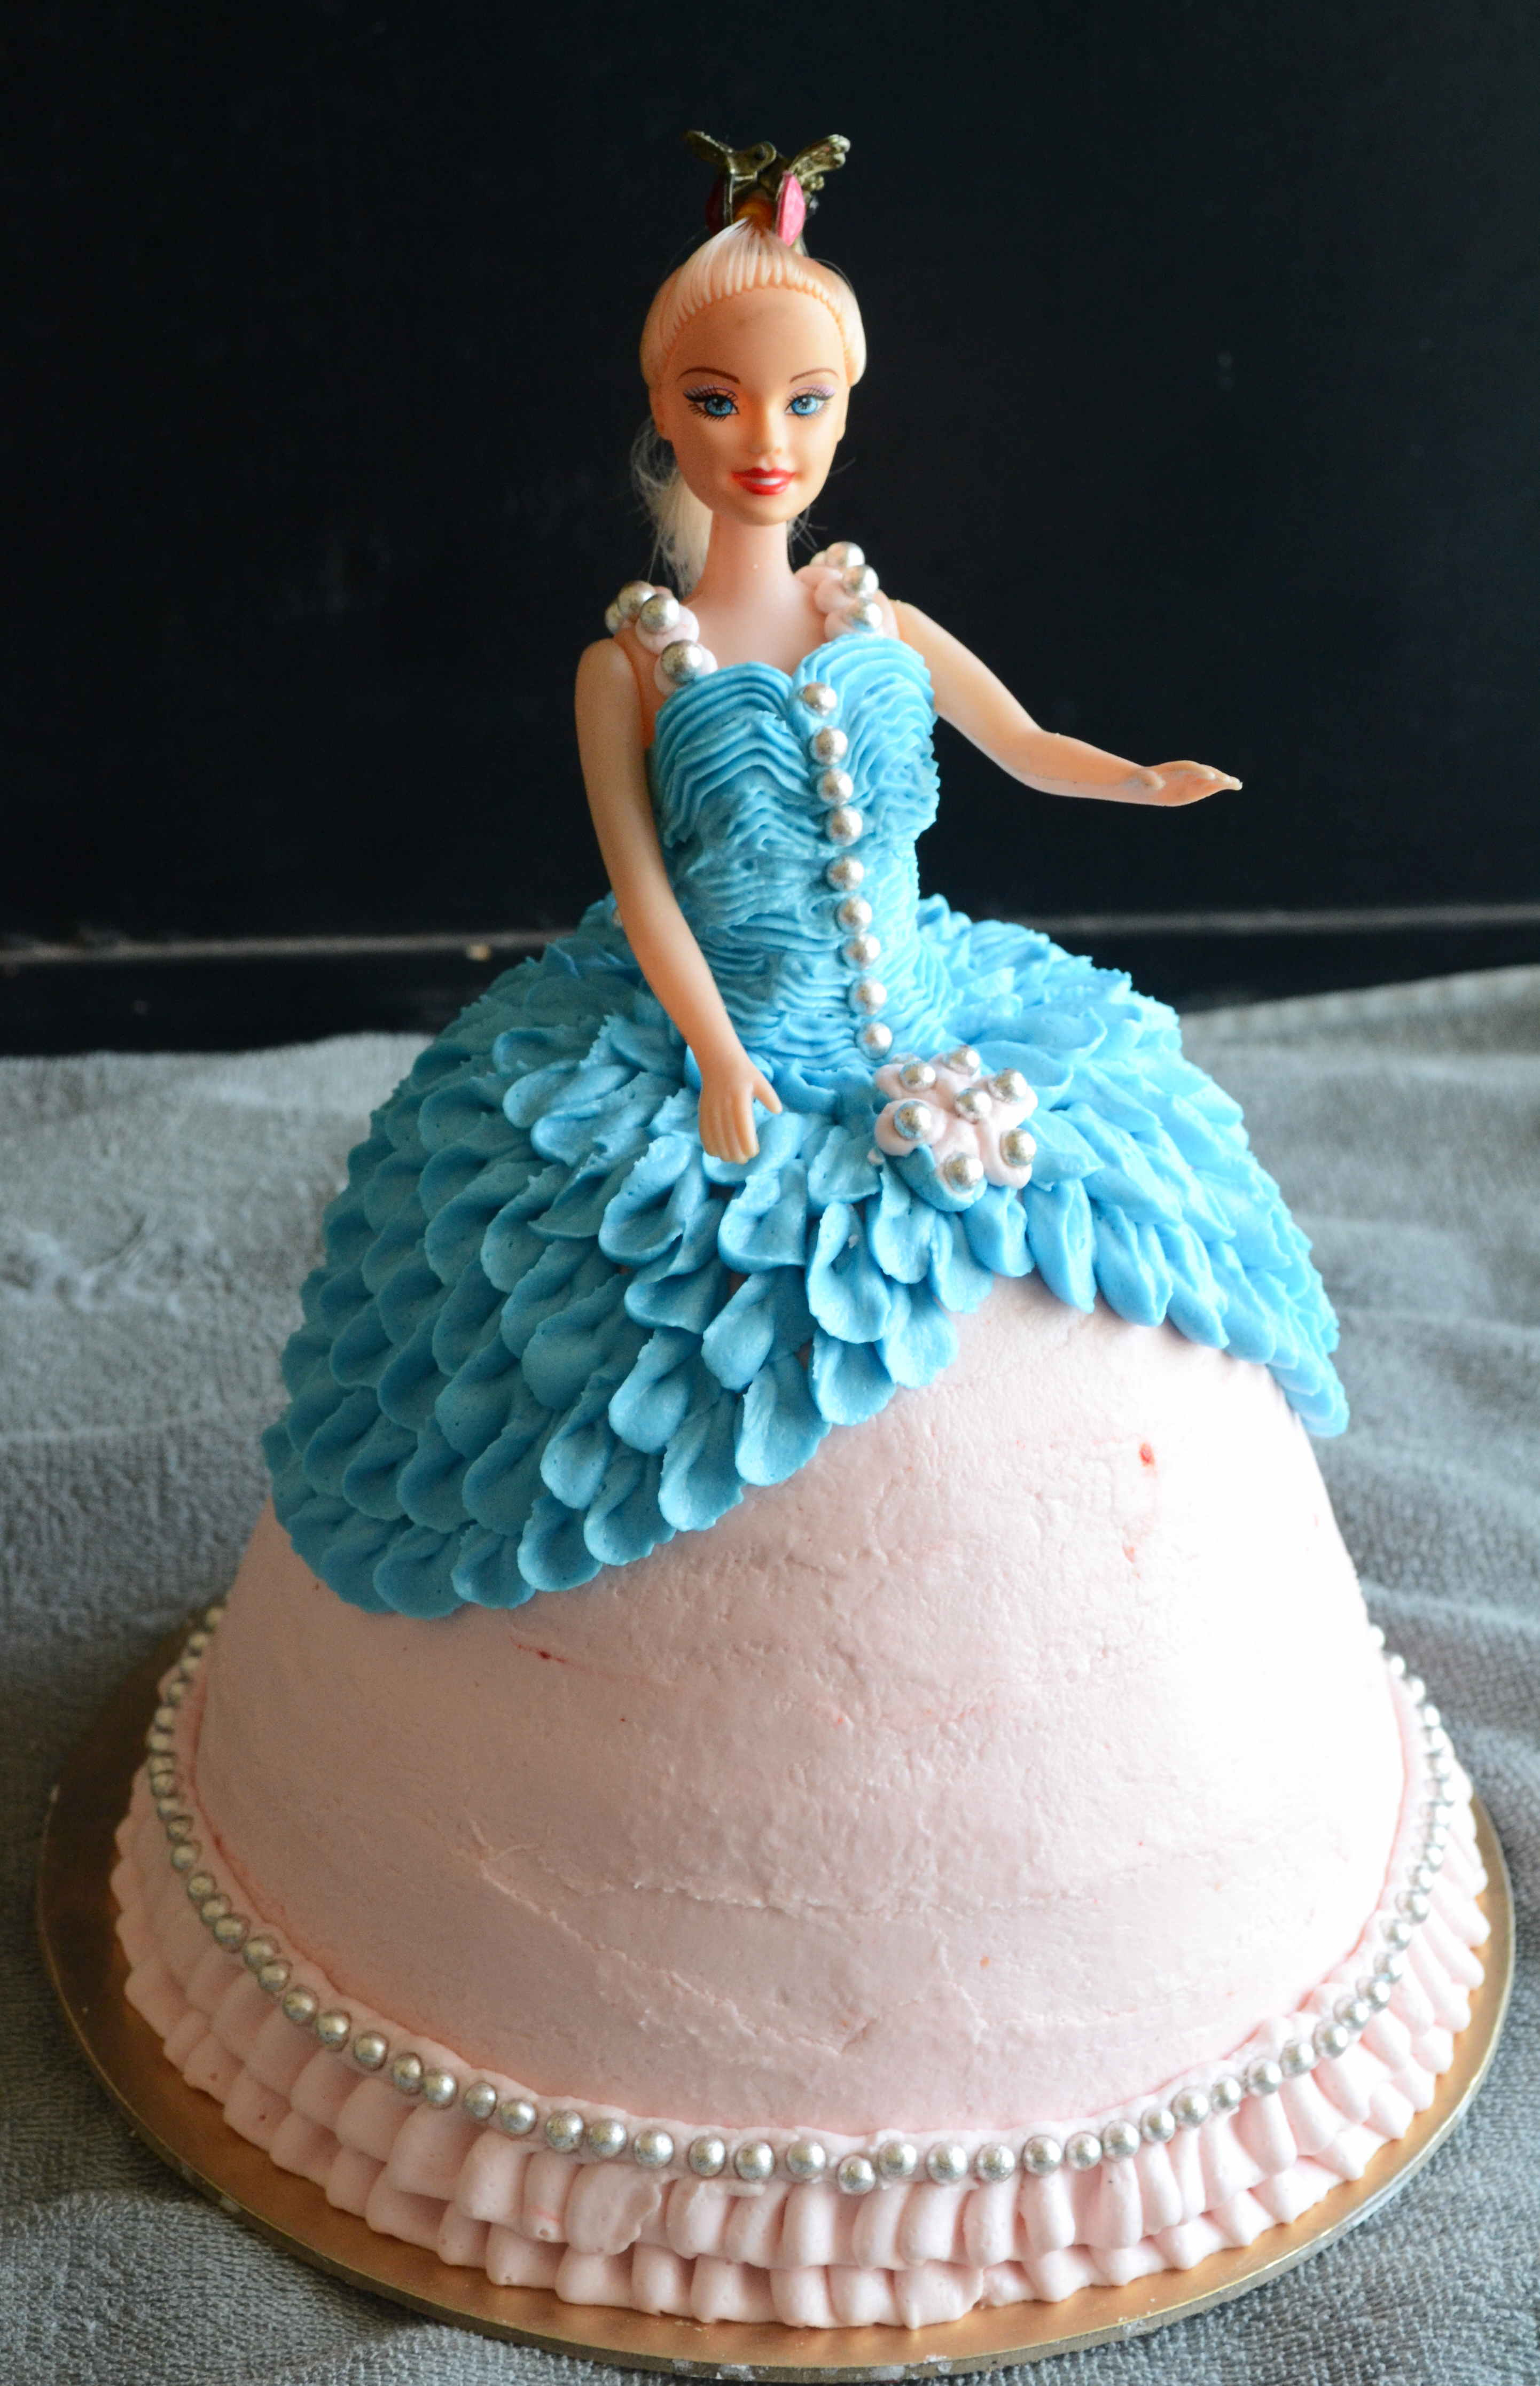 How To Make A Barbie Doll Cake Doll Cake Video Gayathri S Cook